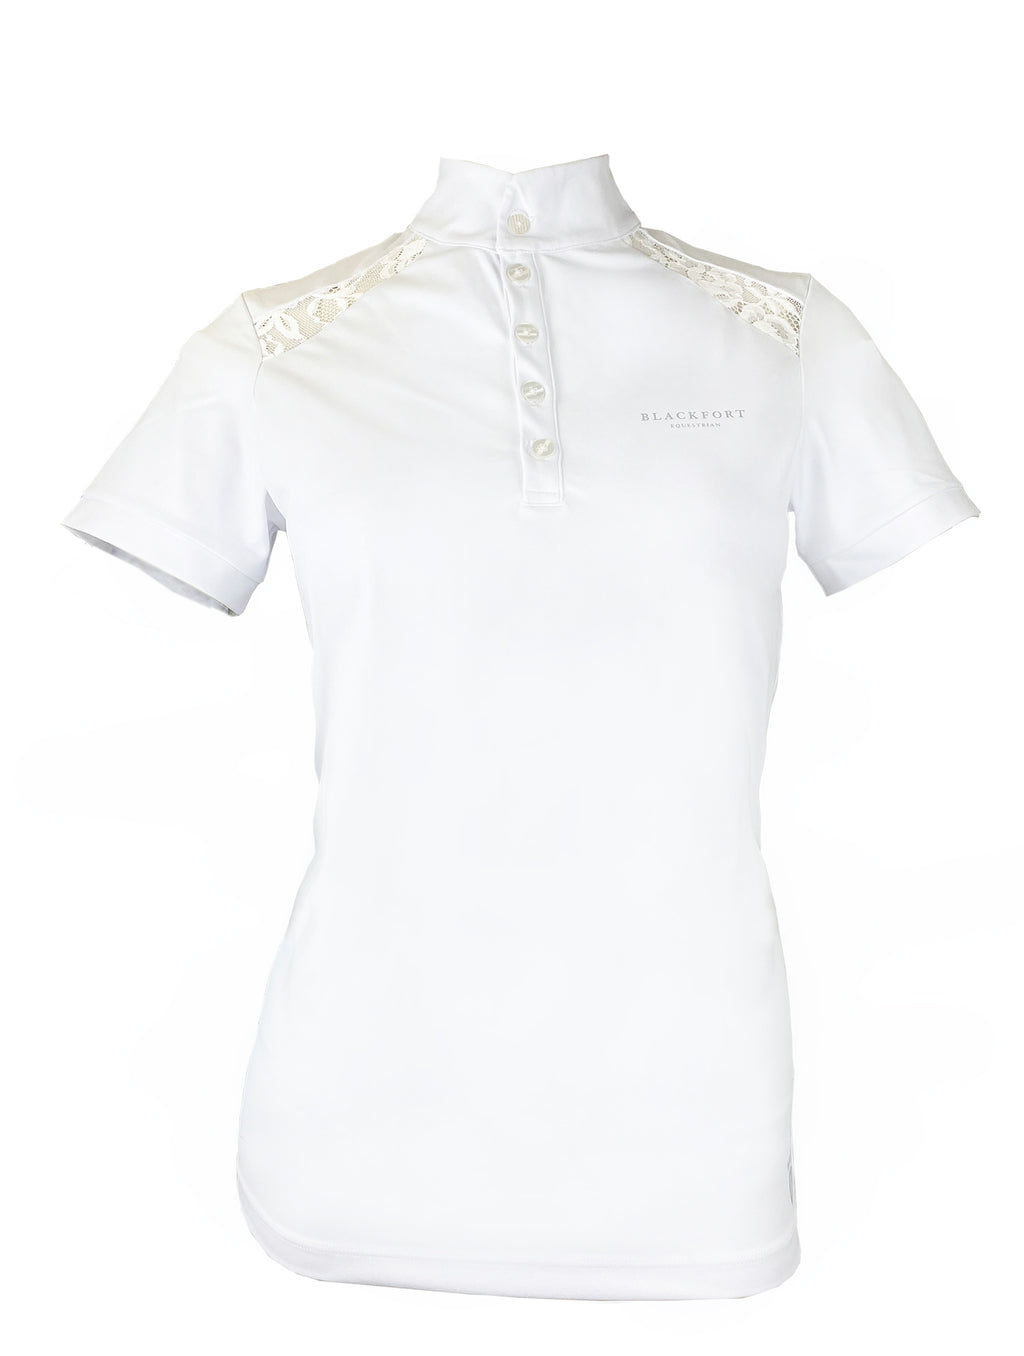 White Lace Collared Show Shirt